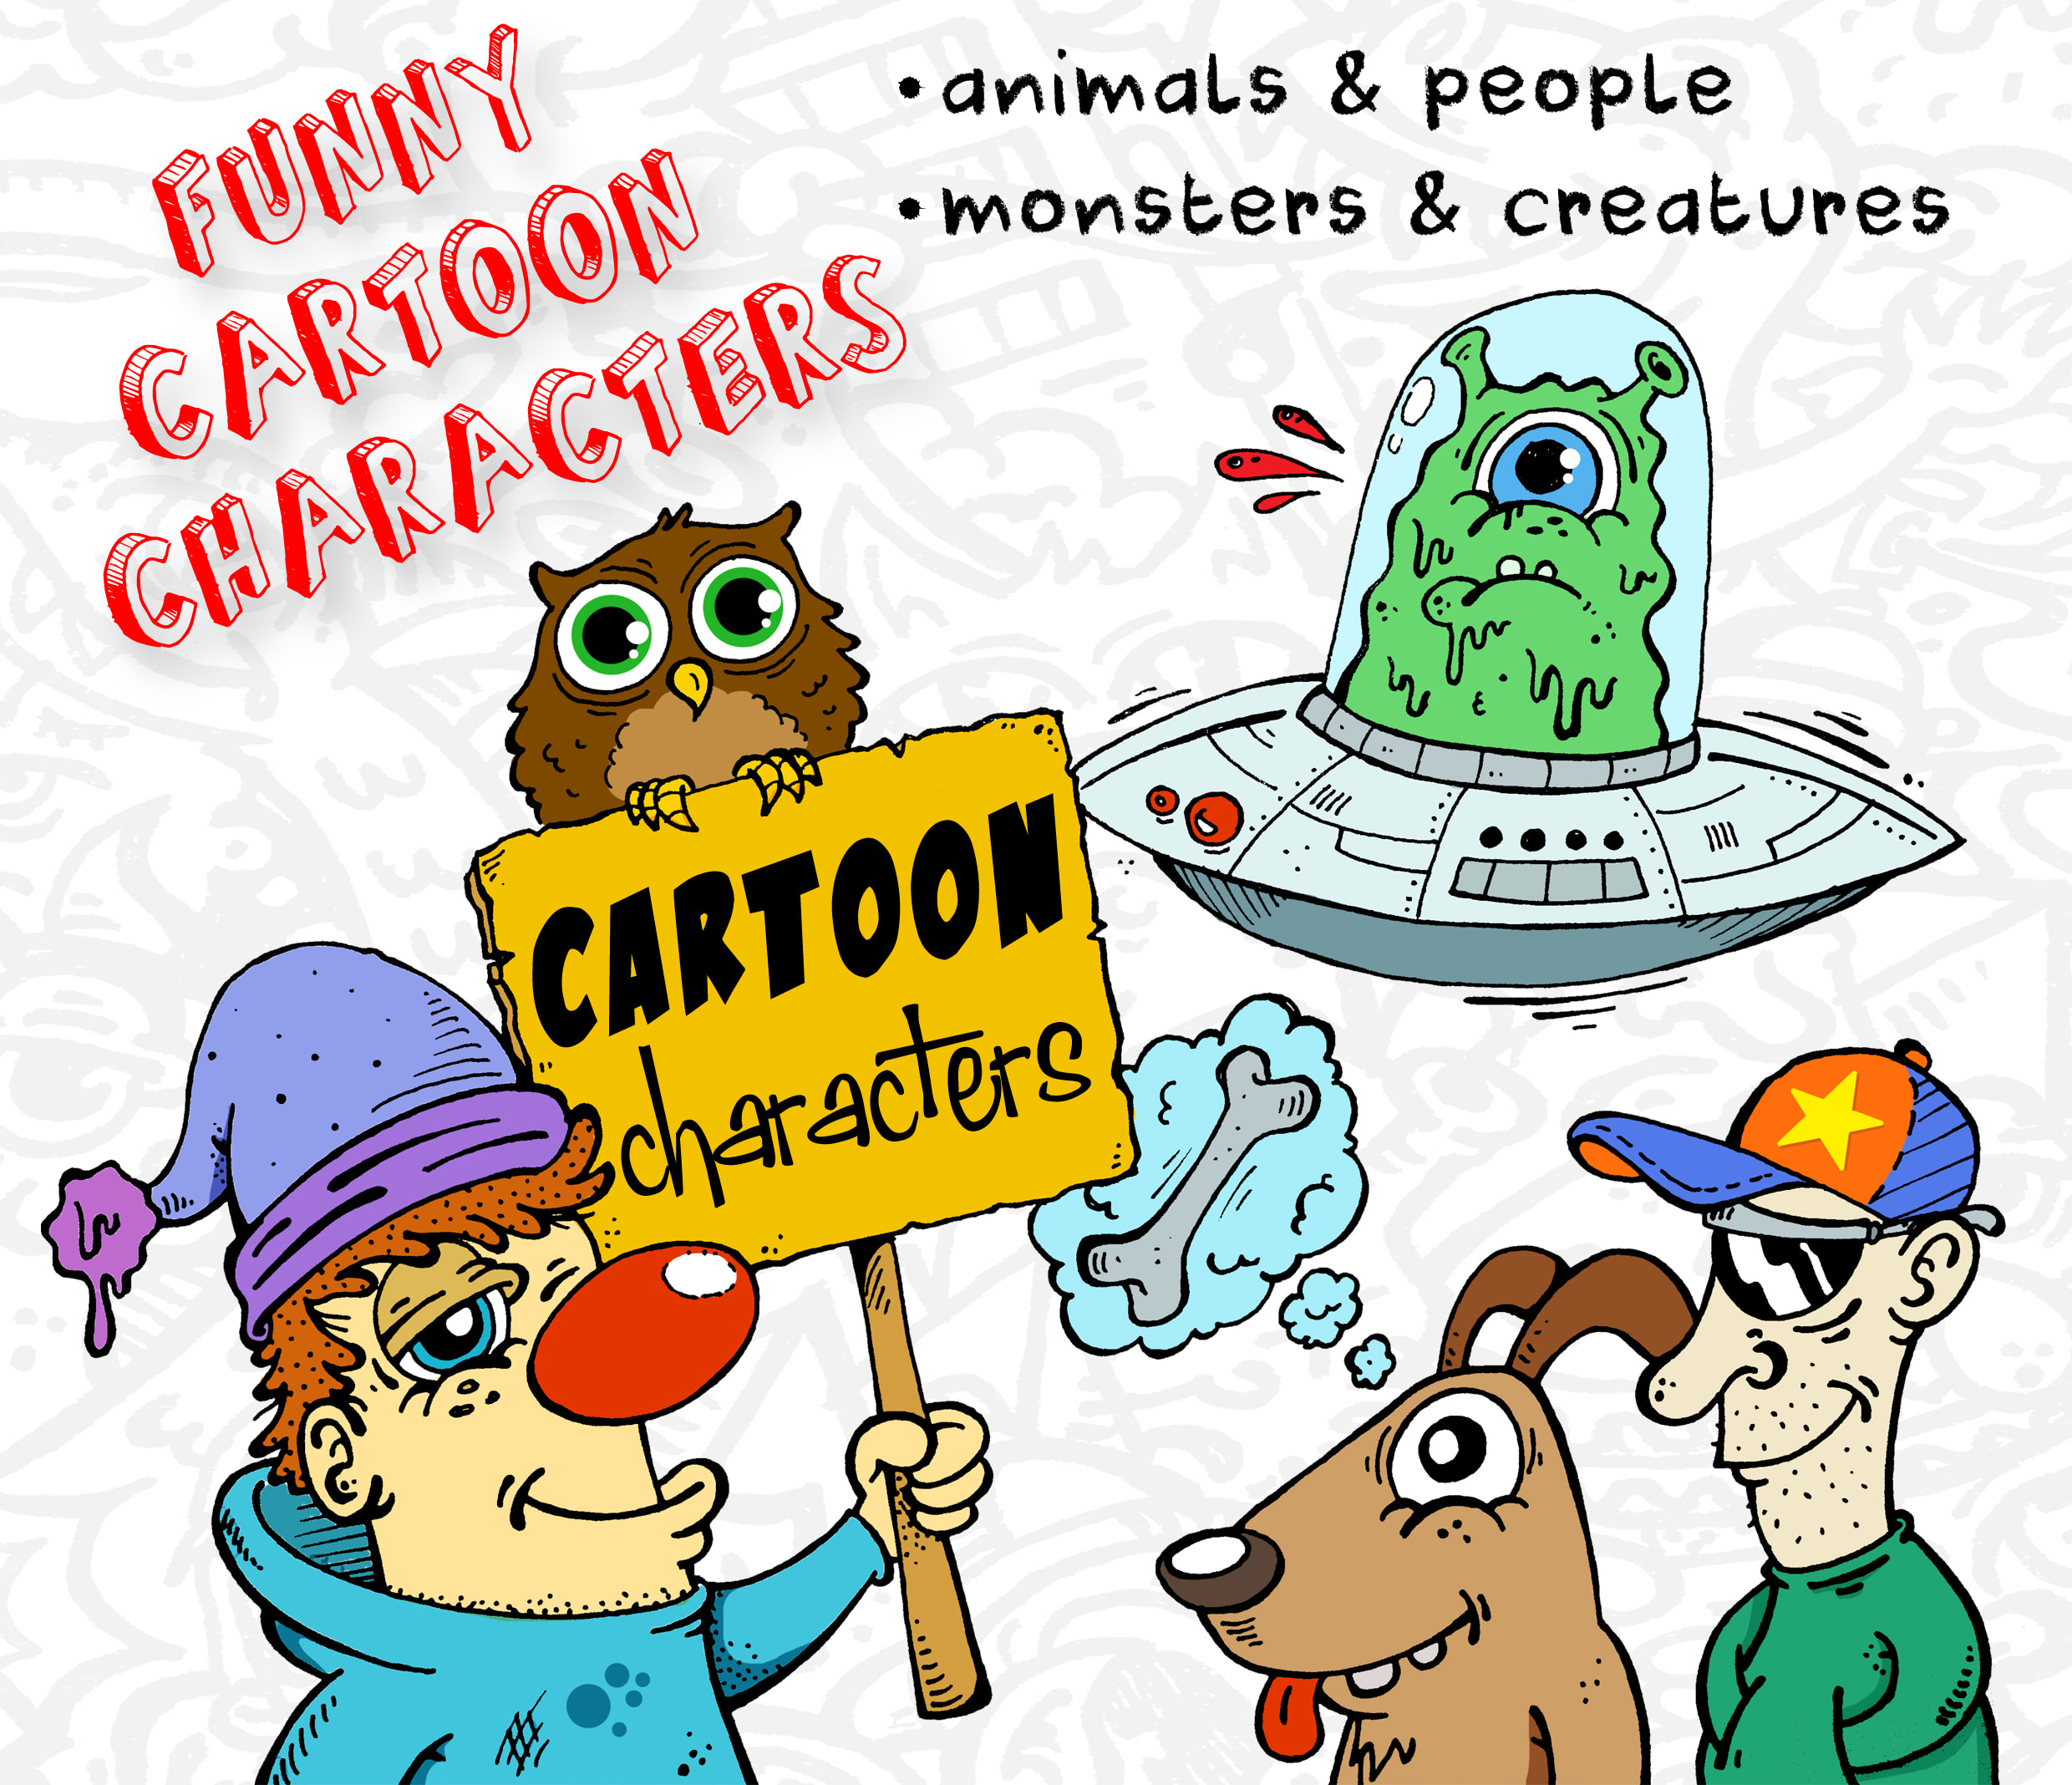 100 Pictures Cartoon Characters draw funny cartoon characters mascot